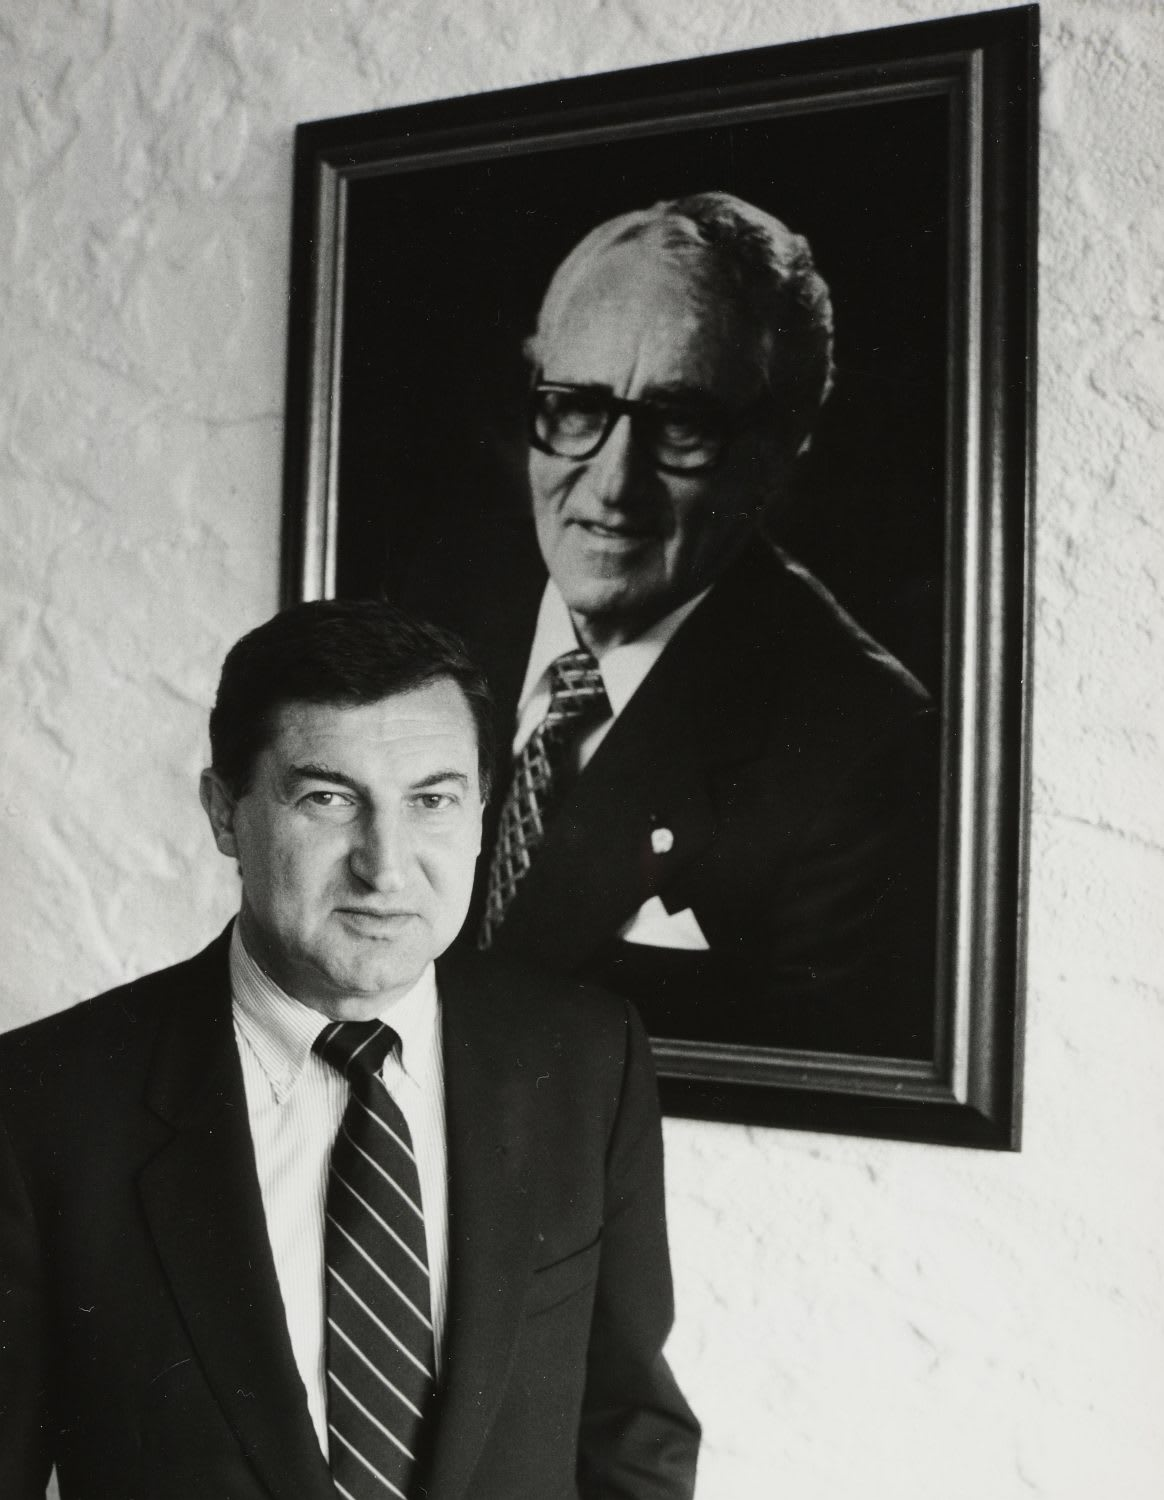 Black and white image of Horst Dassler standing in front of a portrait of his father Adi.